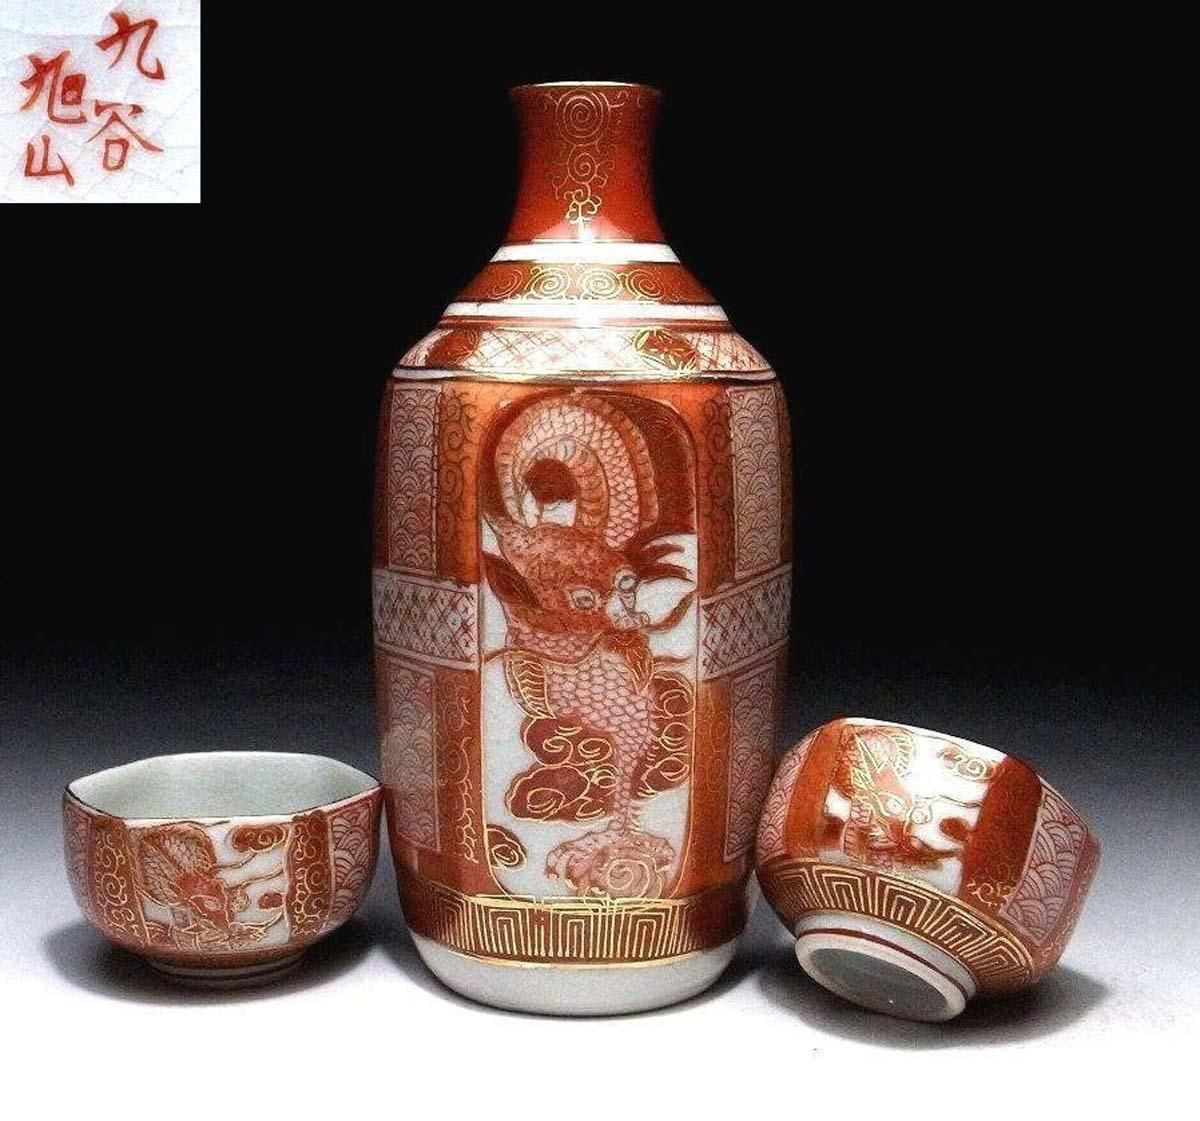 Antique Face Vases Of Japanese Vintage Kutani Yaki Porcelain tokkuri and Cups by Famous for From the Many Faces Of Japan On Ruby Lane